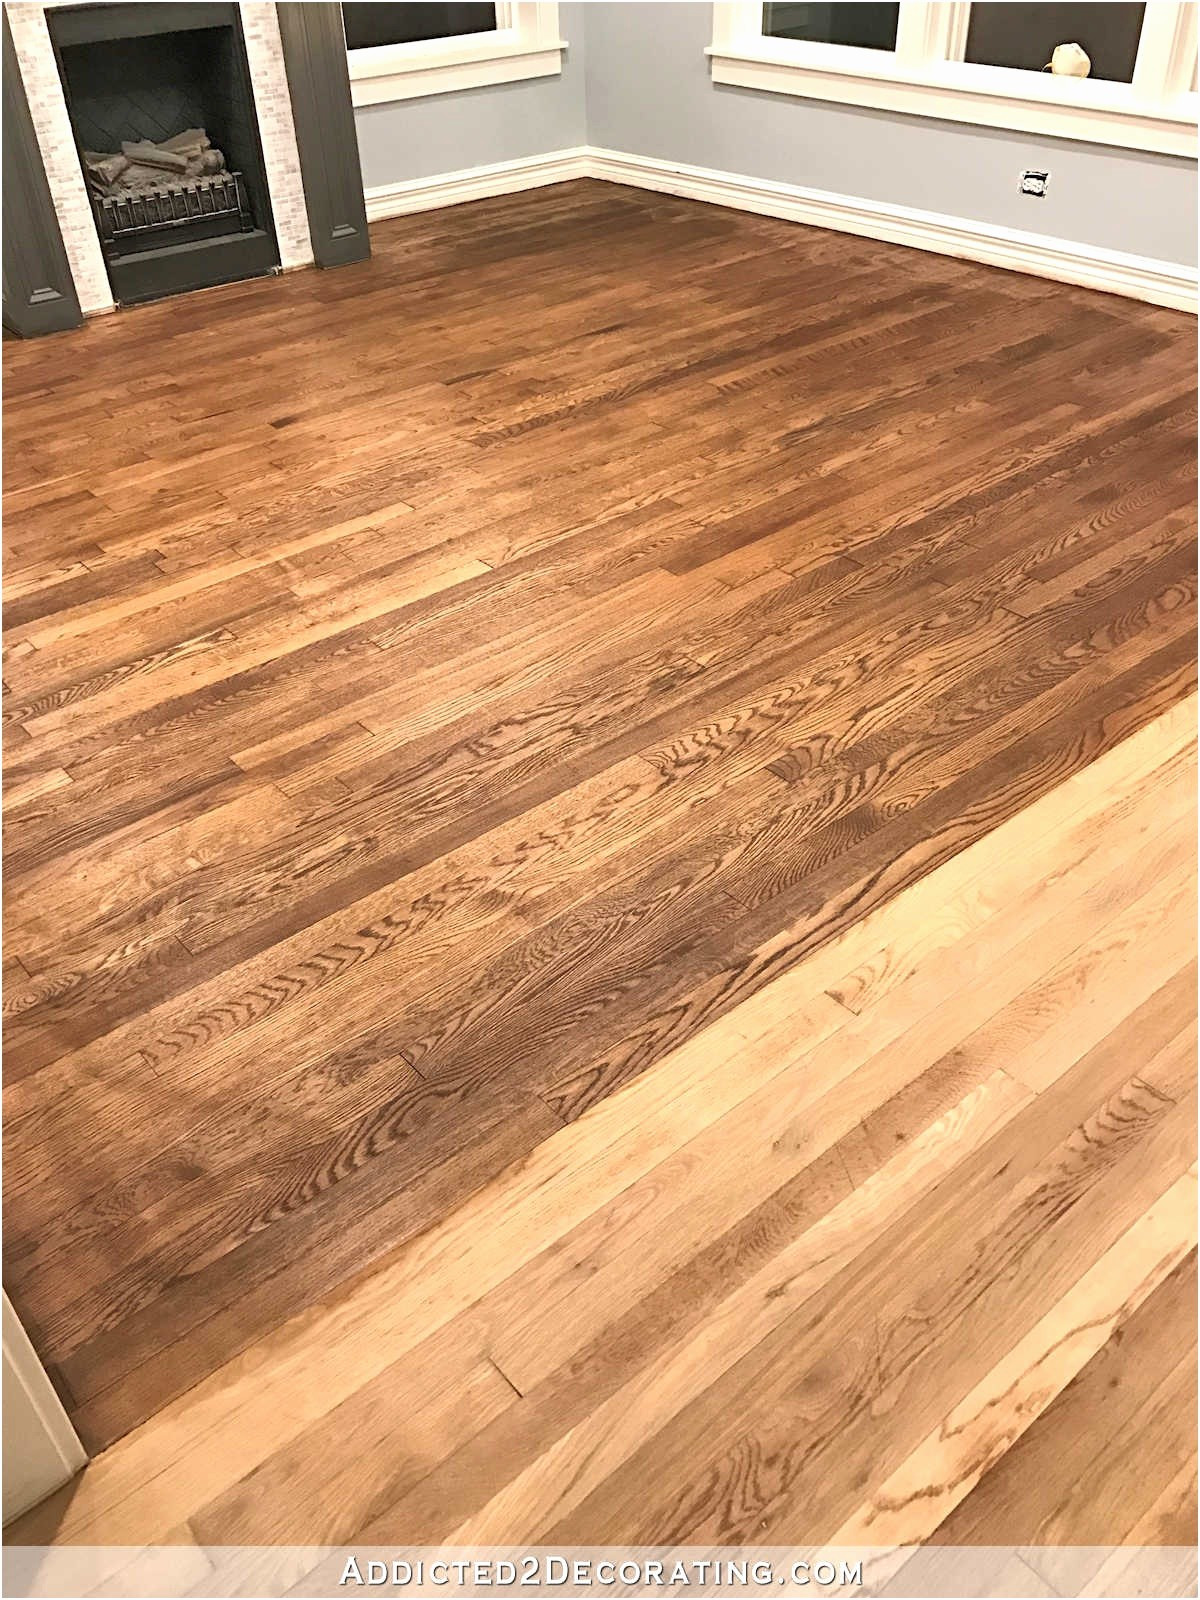 empire today hardwood flooring prices of 13 best of cost of hardwood floors gallery dizpos com in cost of hardwood floors awesome picture 48 of 50 armstrong hardwood flooring fresh hardwood image of